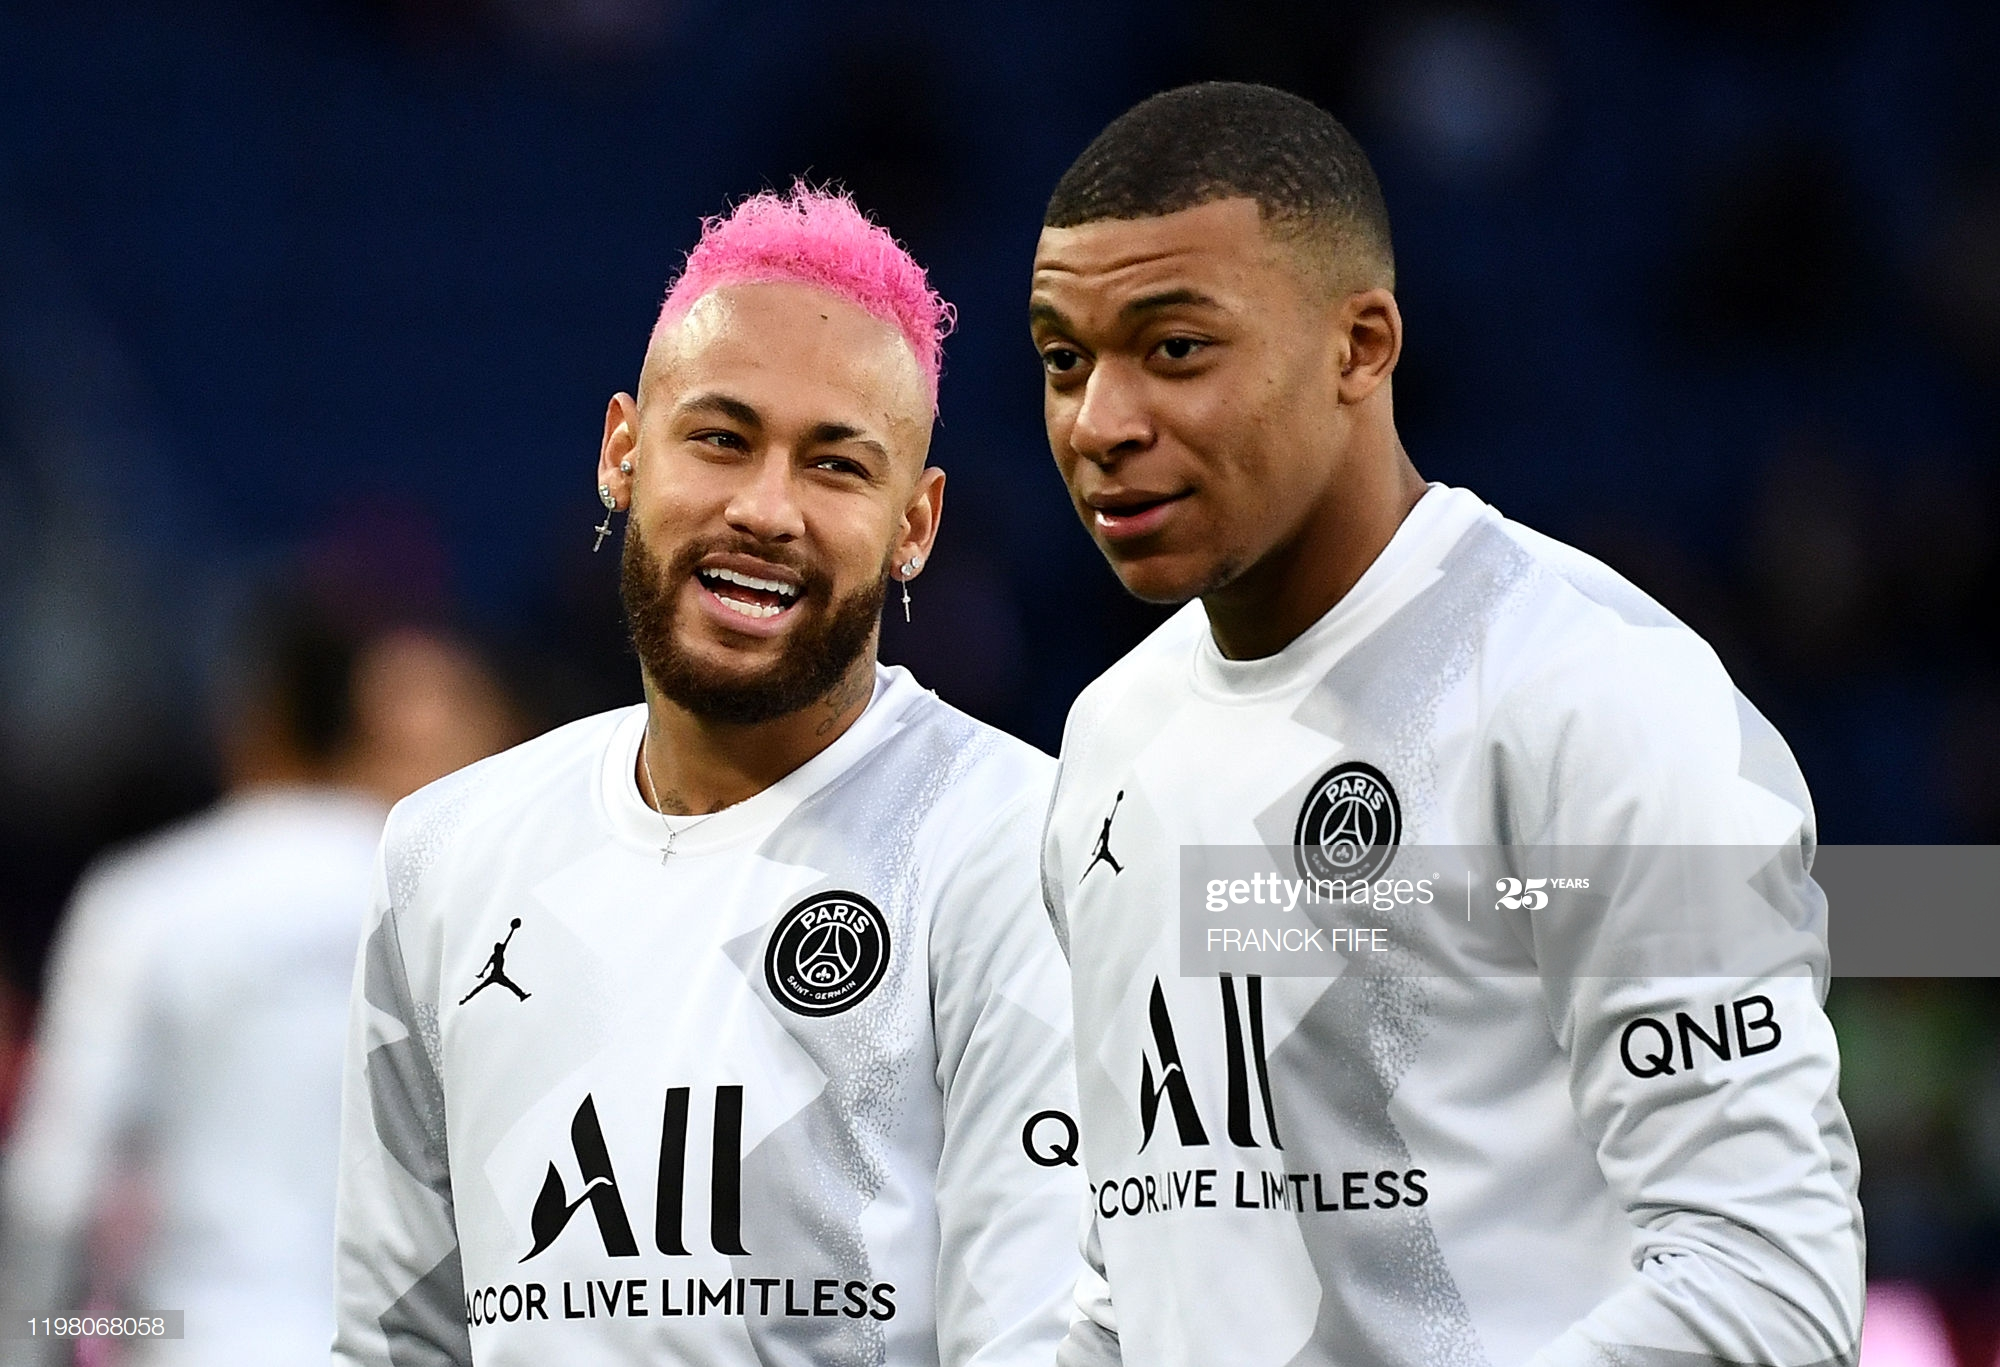 Paris Saint-Germain's Brazilian forward Neymar (L) jokes with Paris Saint-Germain's French forward Kylian MBappe prior to the French L1 football match between Paris Saint-Germain (PSG) and Montpellier Herault SC at the Parc des Princes stadium in Paris, on February 1, 2020. (Photo by FRANCK FIFE / AFP) (Photo by FRANCK FIFE/AFP via Getty Images)